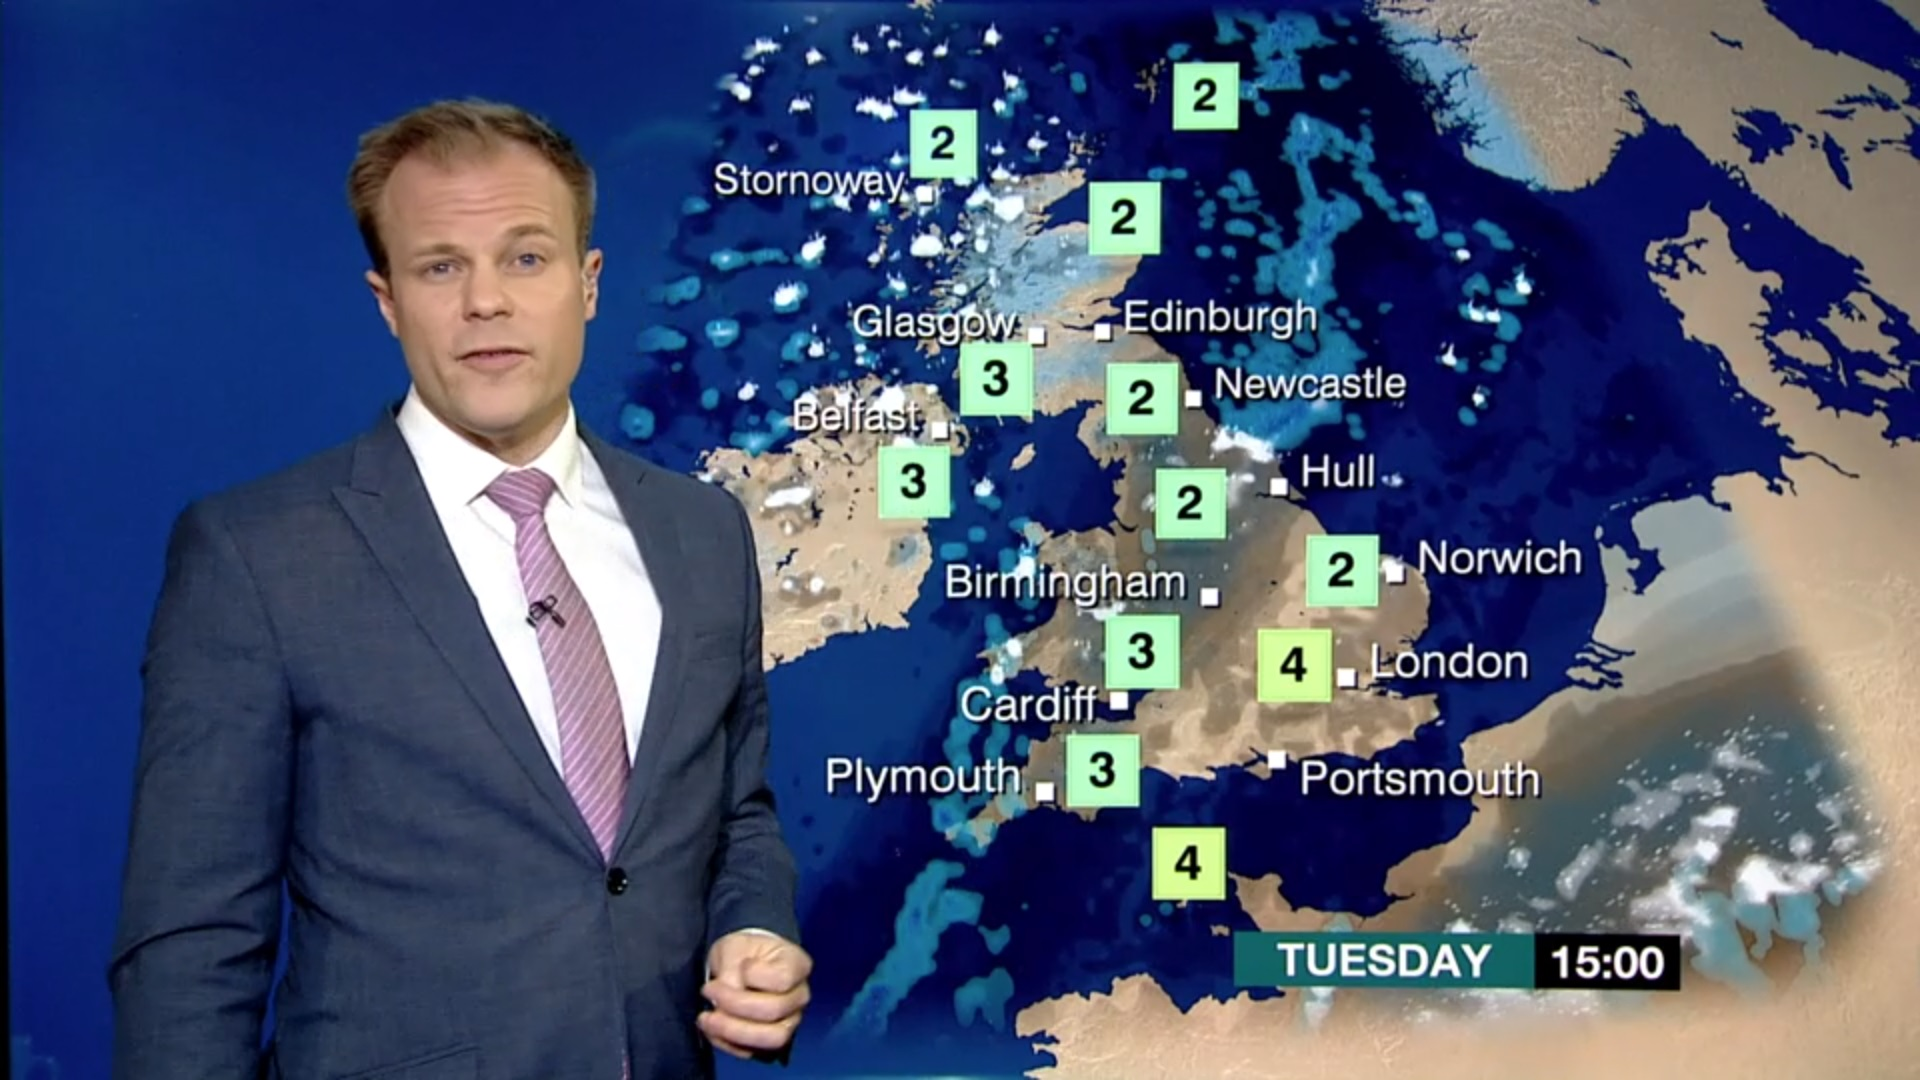 BBC Weather changes preview: Website displaying pages with Meteo